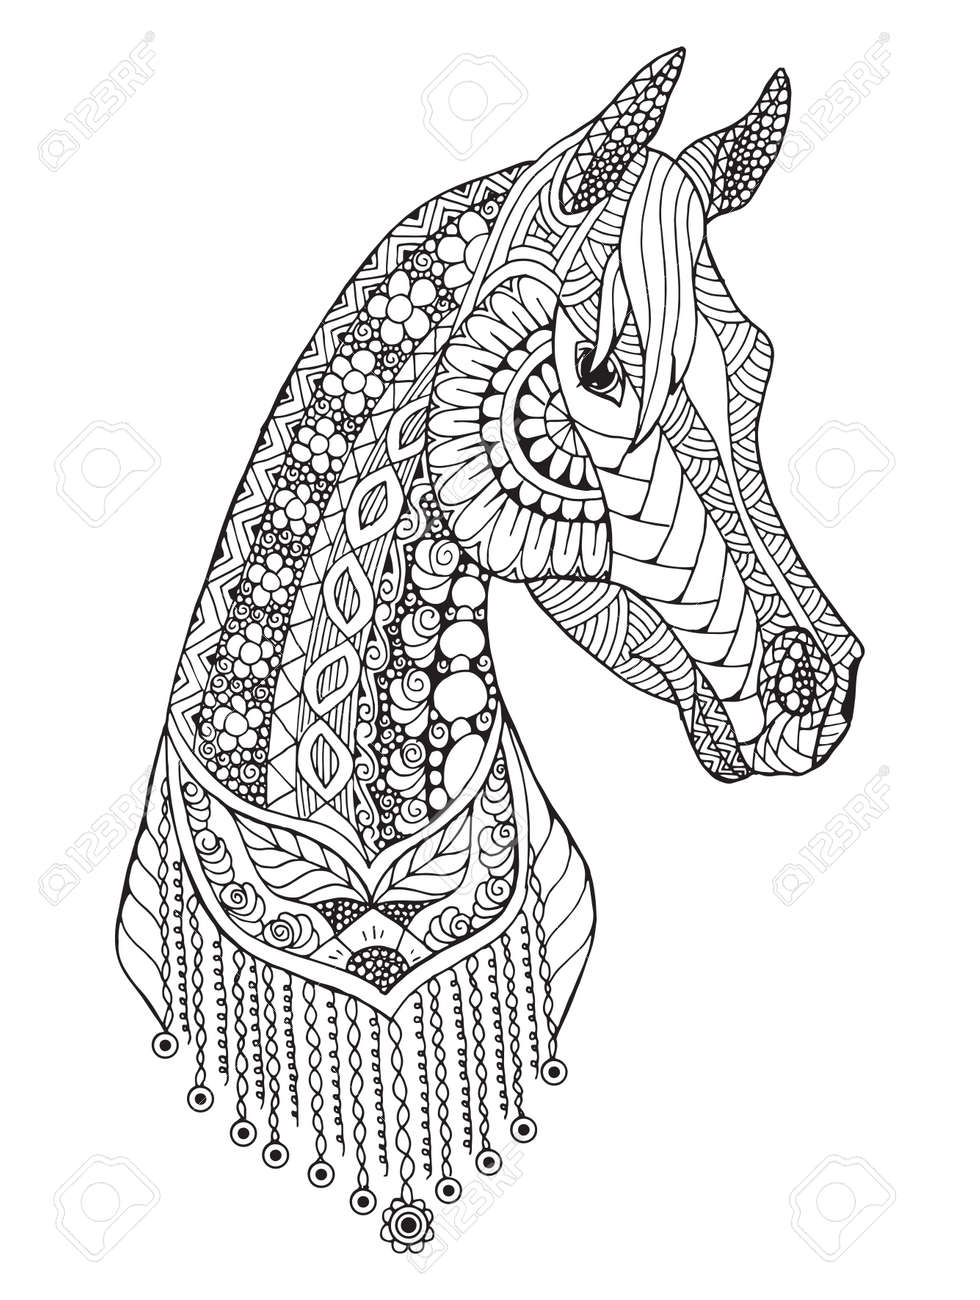 Arabian Horse Zentangle Stylized Vector Illustration Freehand Pencil Pattern Zen Art